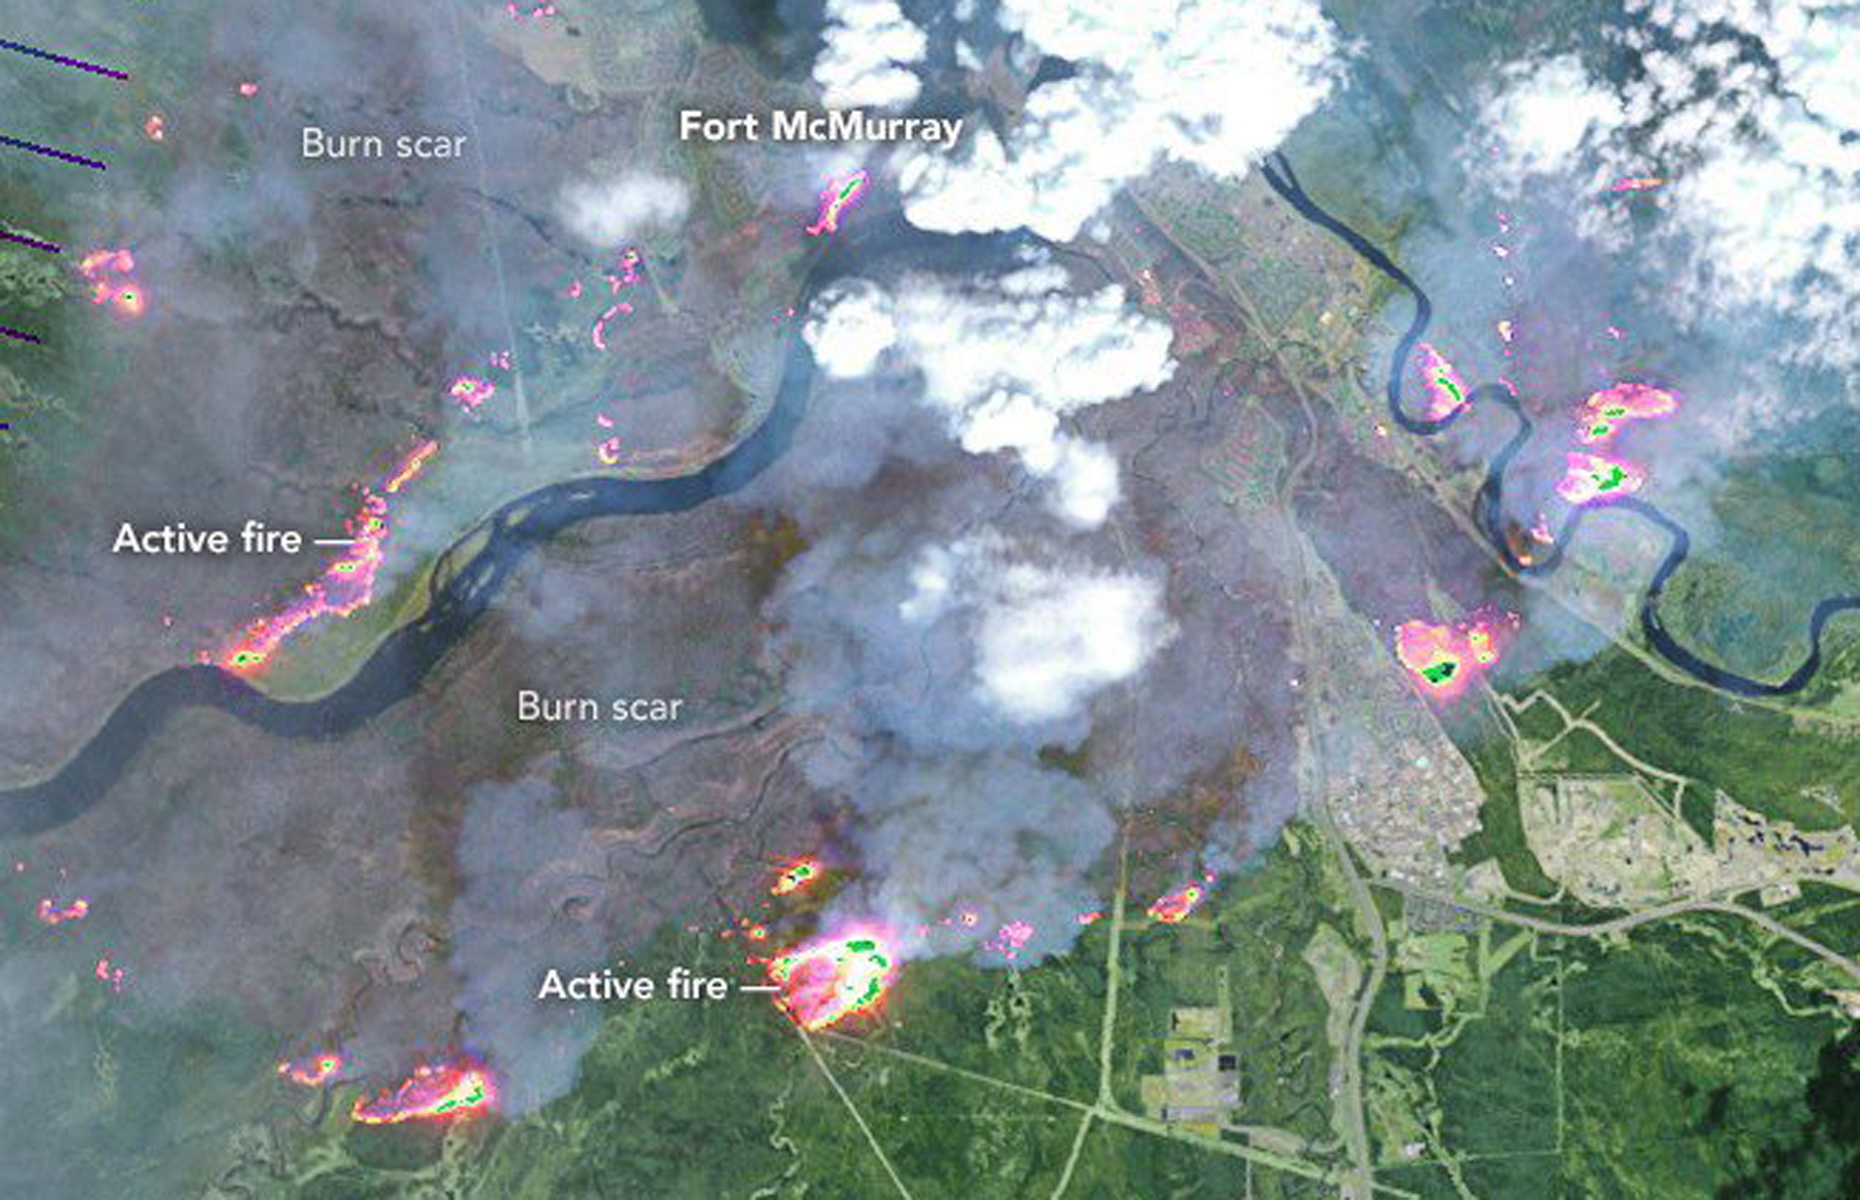 On May 4, 2016, the the Enhanced Thematic Mapper Plus (ETM+) on the Landsat 7 satellite acquired this false-color image of the wildfire that burned through Fort McMurray in Alberta, Canada. The image combines shortwave infrared, near infrared, and green light (bands 5-4-2). Near- and short-wave infrared help penetrate clouds and smoke to reveal the hot spots associated with active fires, which appear red. Smoke appears white and burned areas appear brown.